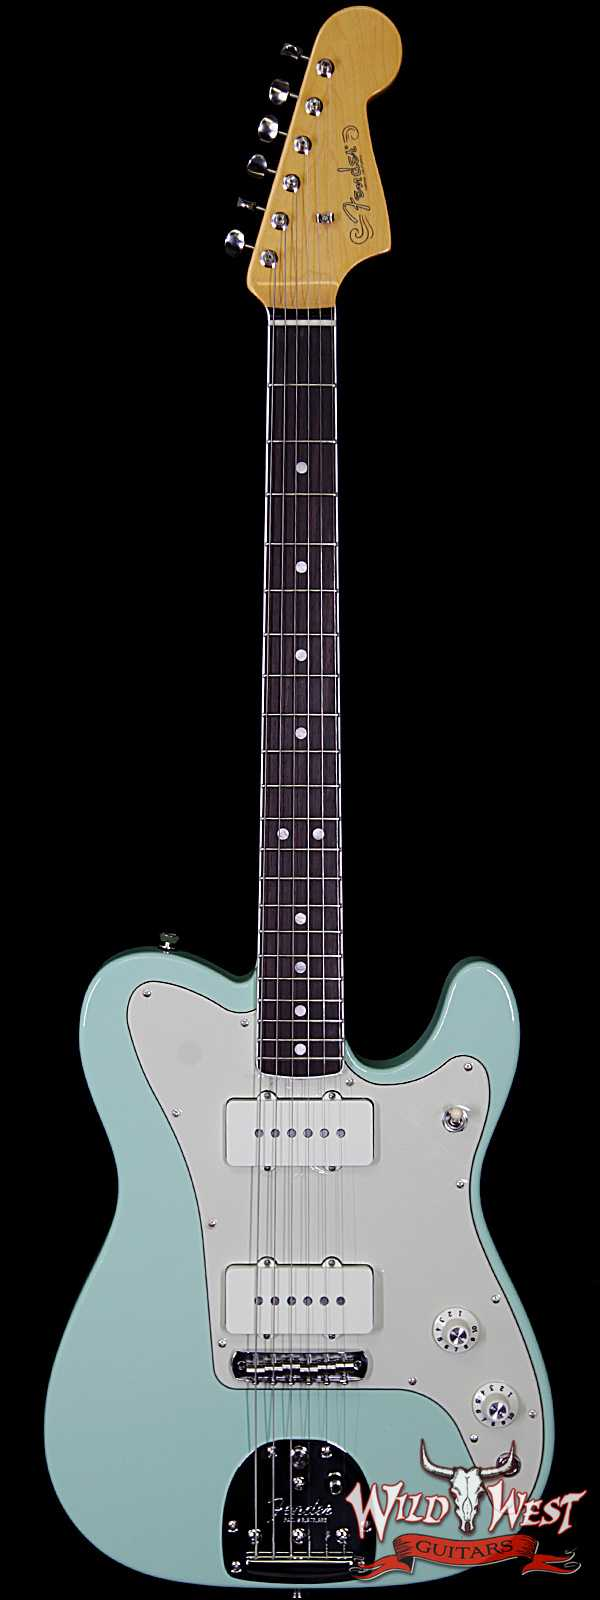 Fender USA Limited Edition Parallel Universe Jazz Telecaster Rosewood Fretboard Surf Green